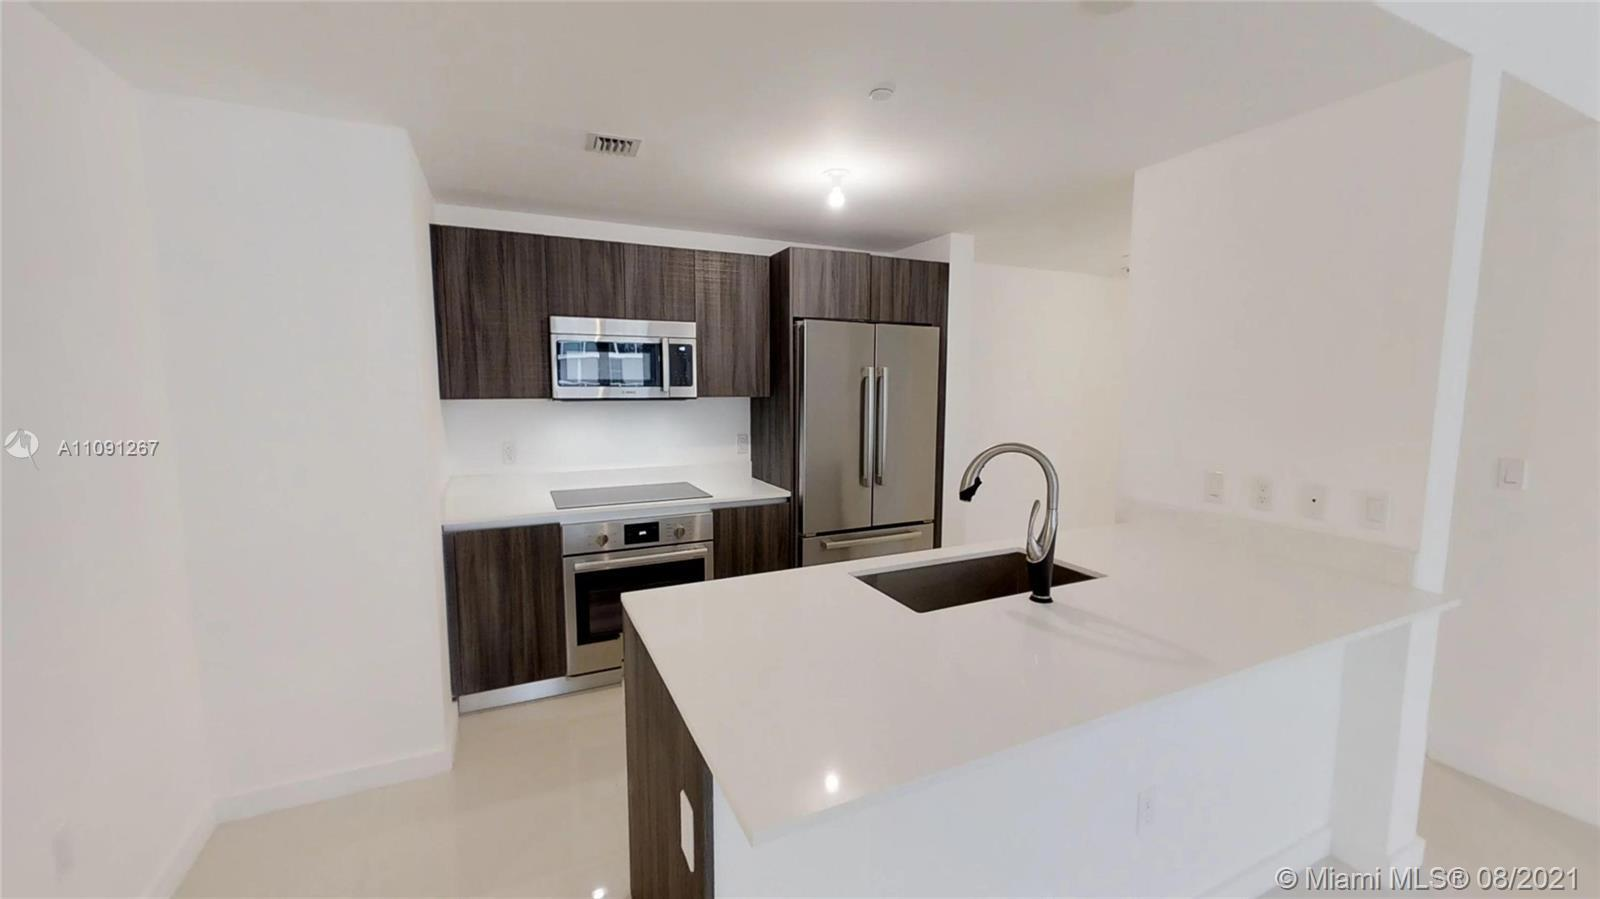 UNIT WITH PRIVATE ELEVATOR, 2 BED + DEN & 3 BA, 1,681 sq/ft (TOTAL AREA). OVERSIZED BALCONY WITH PA